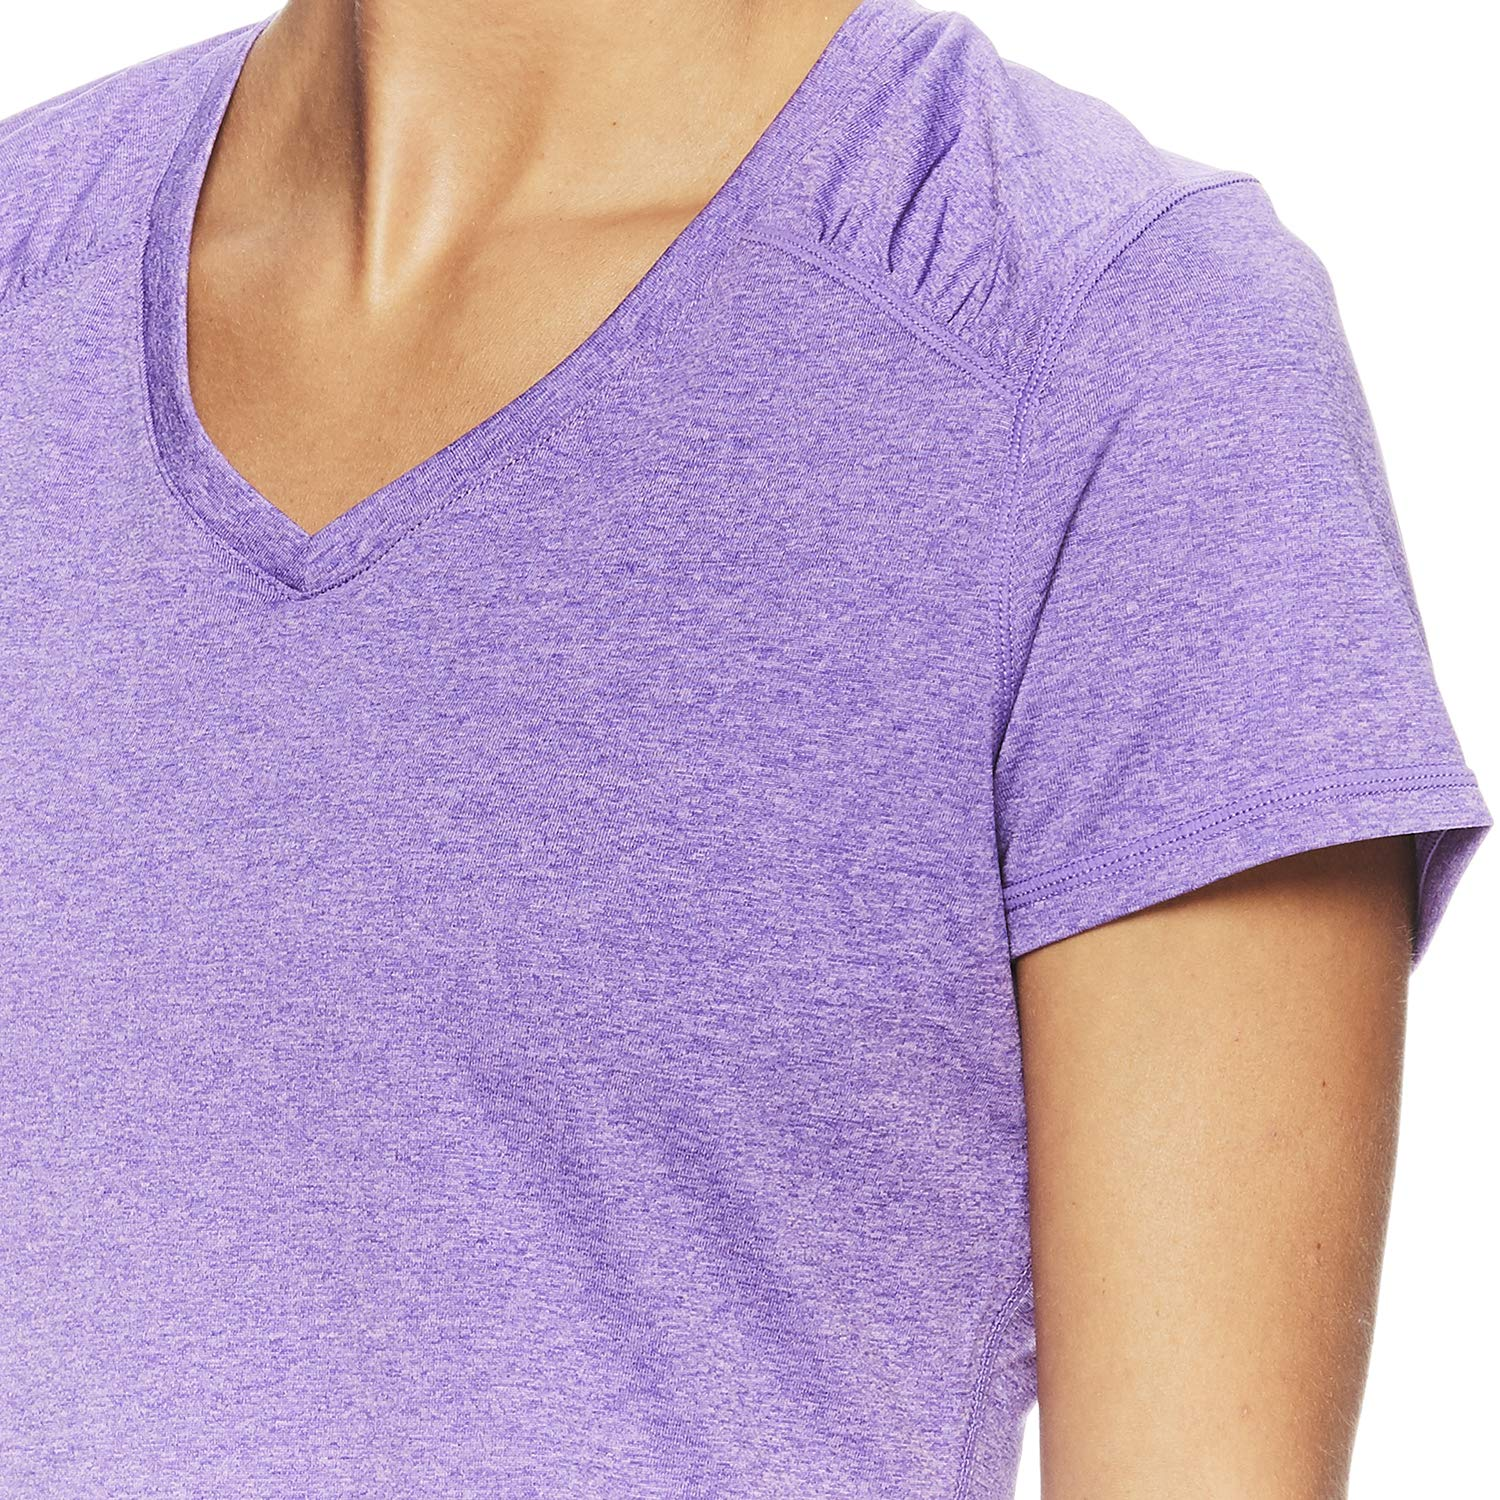 HEAD Women's Brianna Shirred Short Sleeve Workout T-Shirt - Marled Performance Crew Neck Activewear Top - Brianna Chive Blossom Heather, X-Small by HEAD (Image #4)